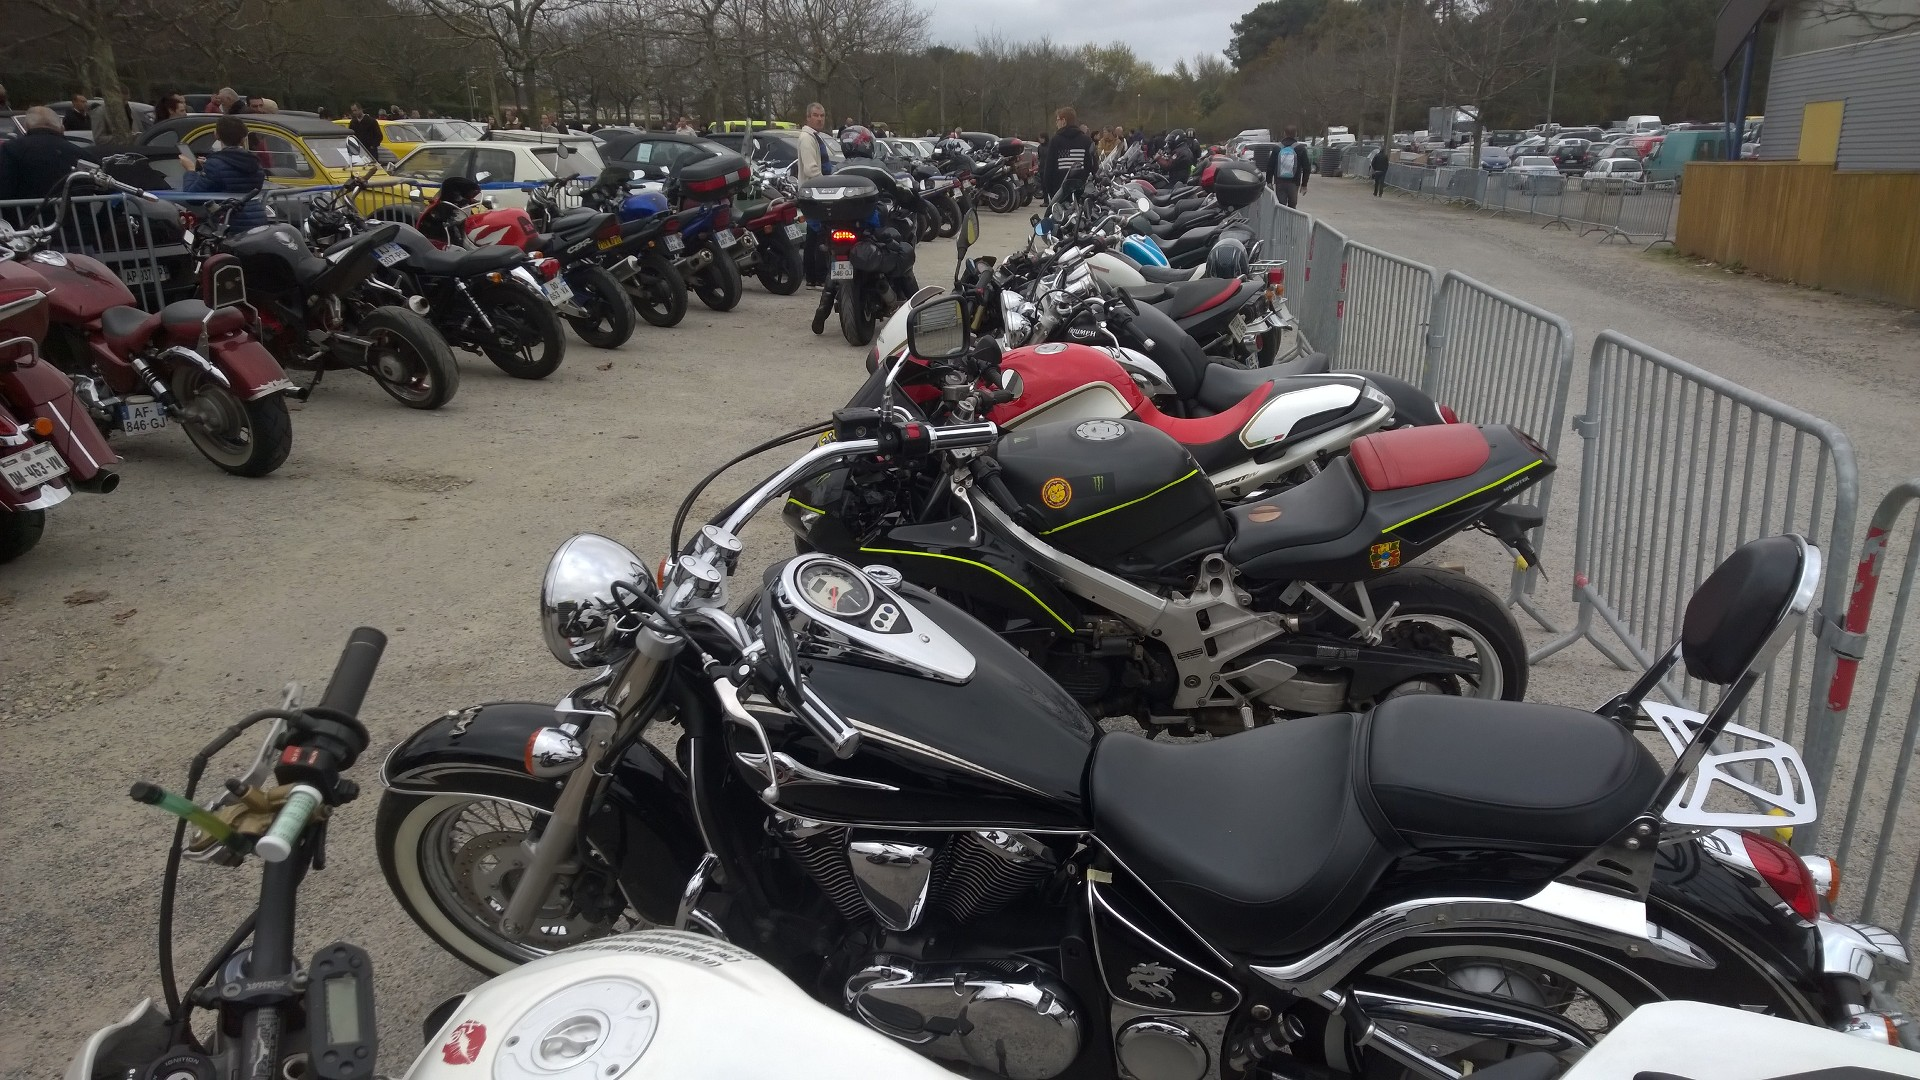 DM photo - plein de motos - Ouest Motors Festival - 2015 - Lorient